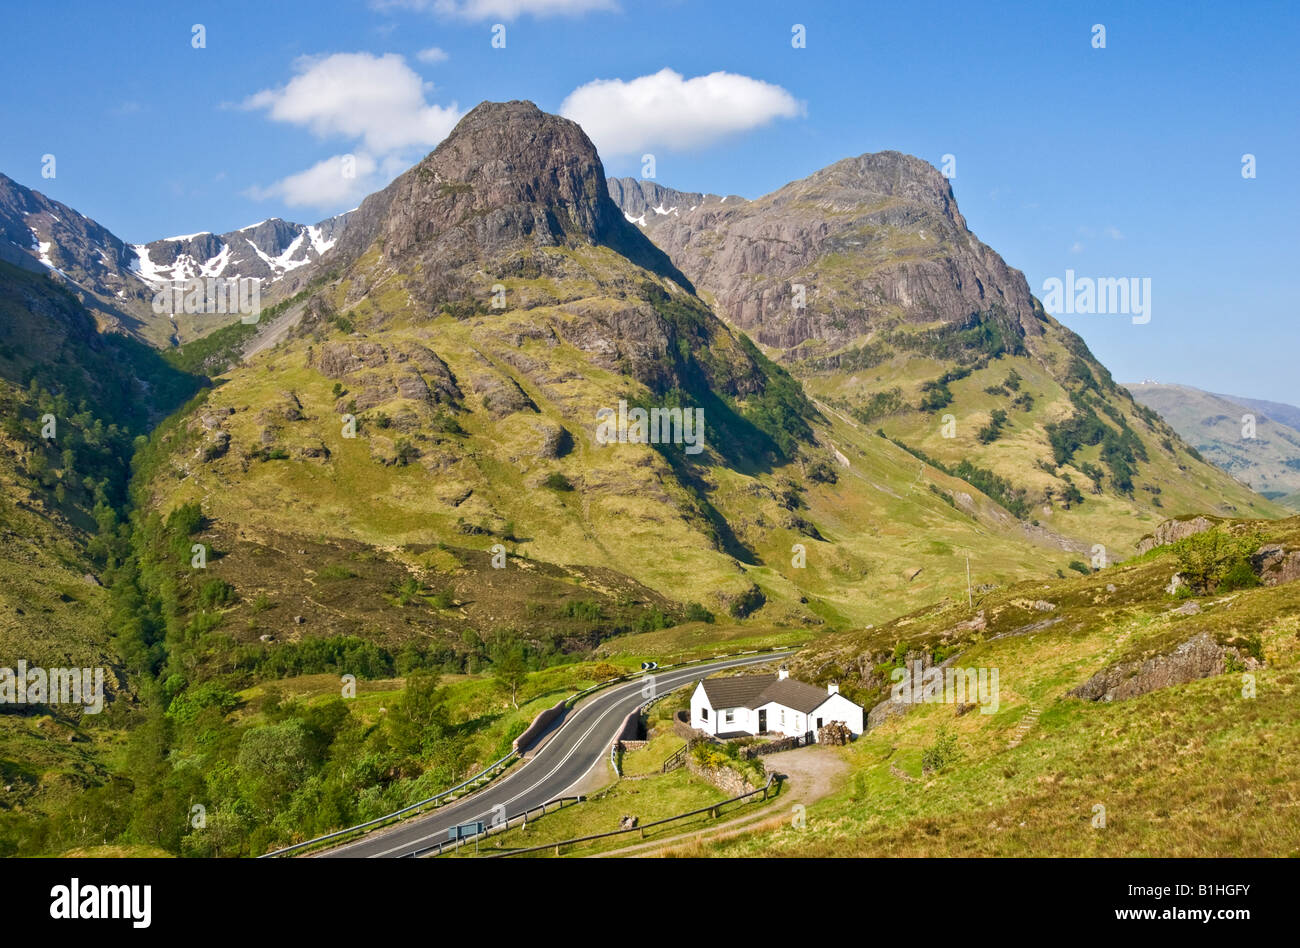 Two of The famous Three Sisters mountains in Glen Coe West Highlands Scotland with cottage - Stock Image